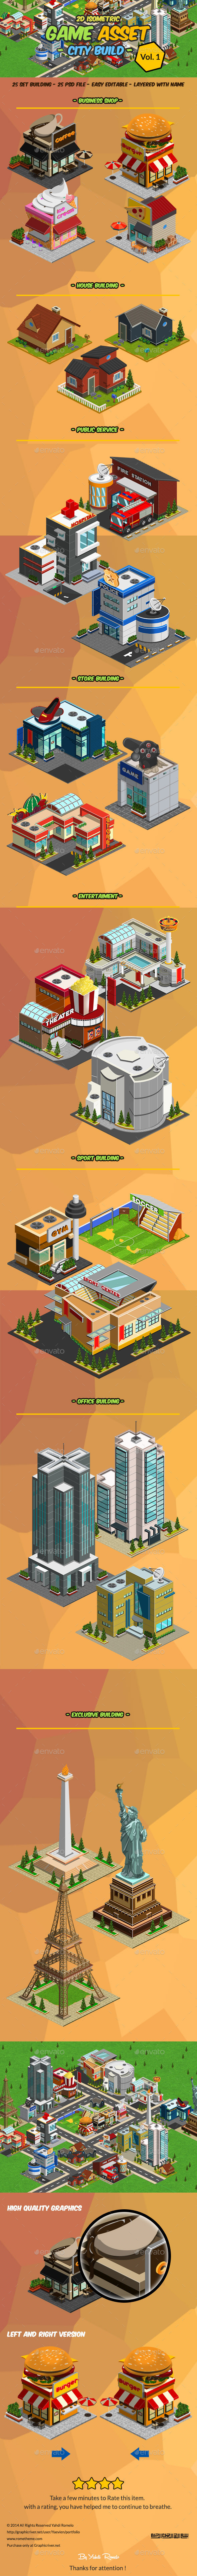 2D Isometric Game Asset - City Build Vol 1 | Themestack net